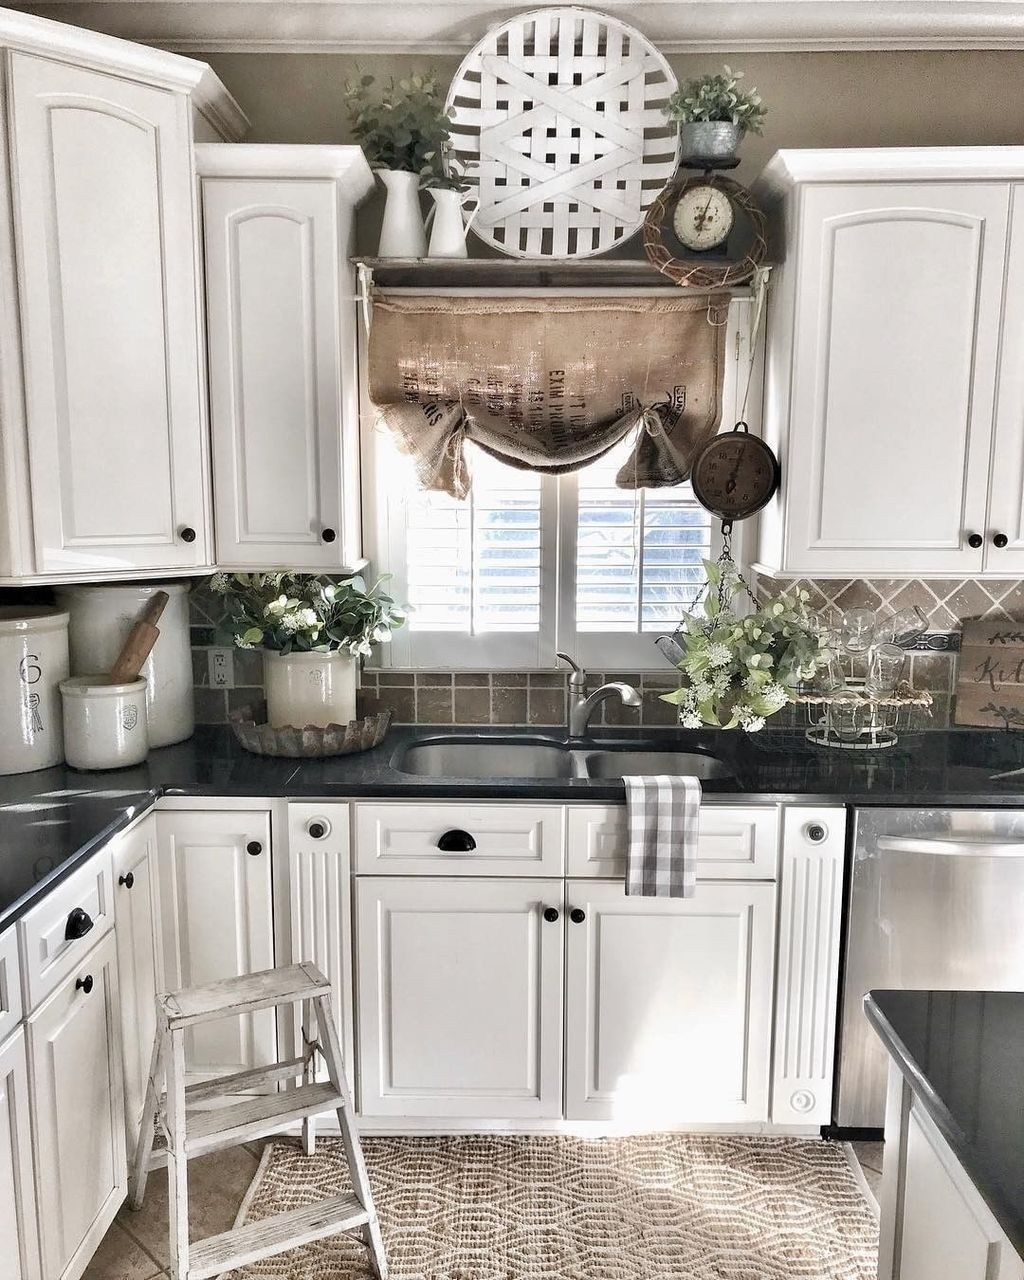 Chic Modern Farmhouse Kitchen Decor Ideas 36 Farmhouse Kitchen